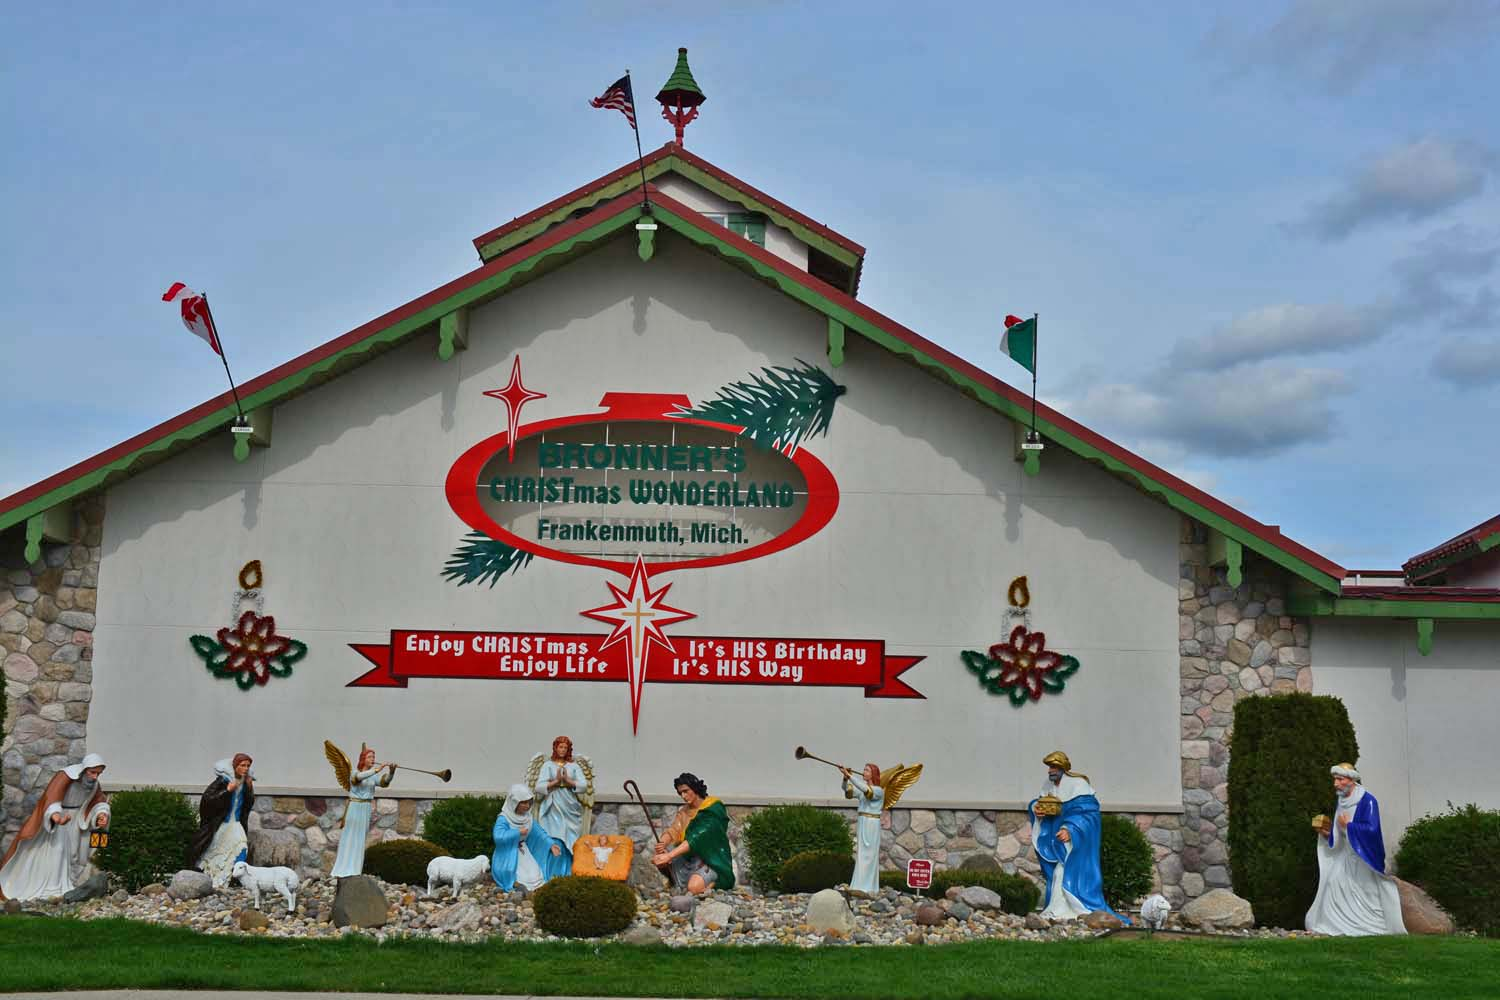 Bronner's Christmas Store Frankenmuth, Michigan